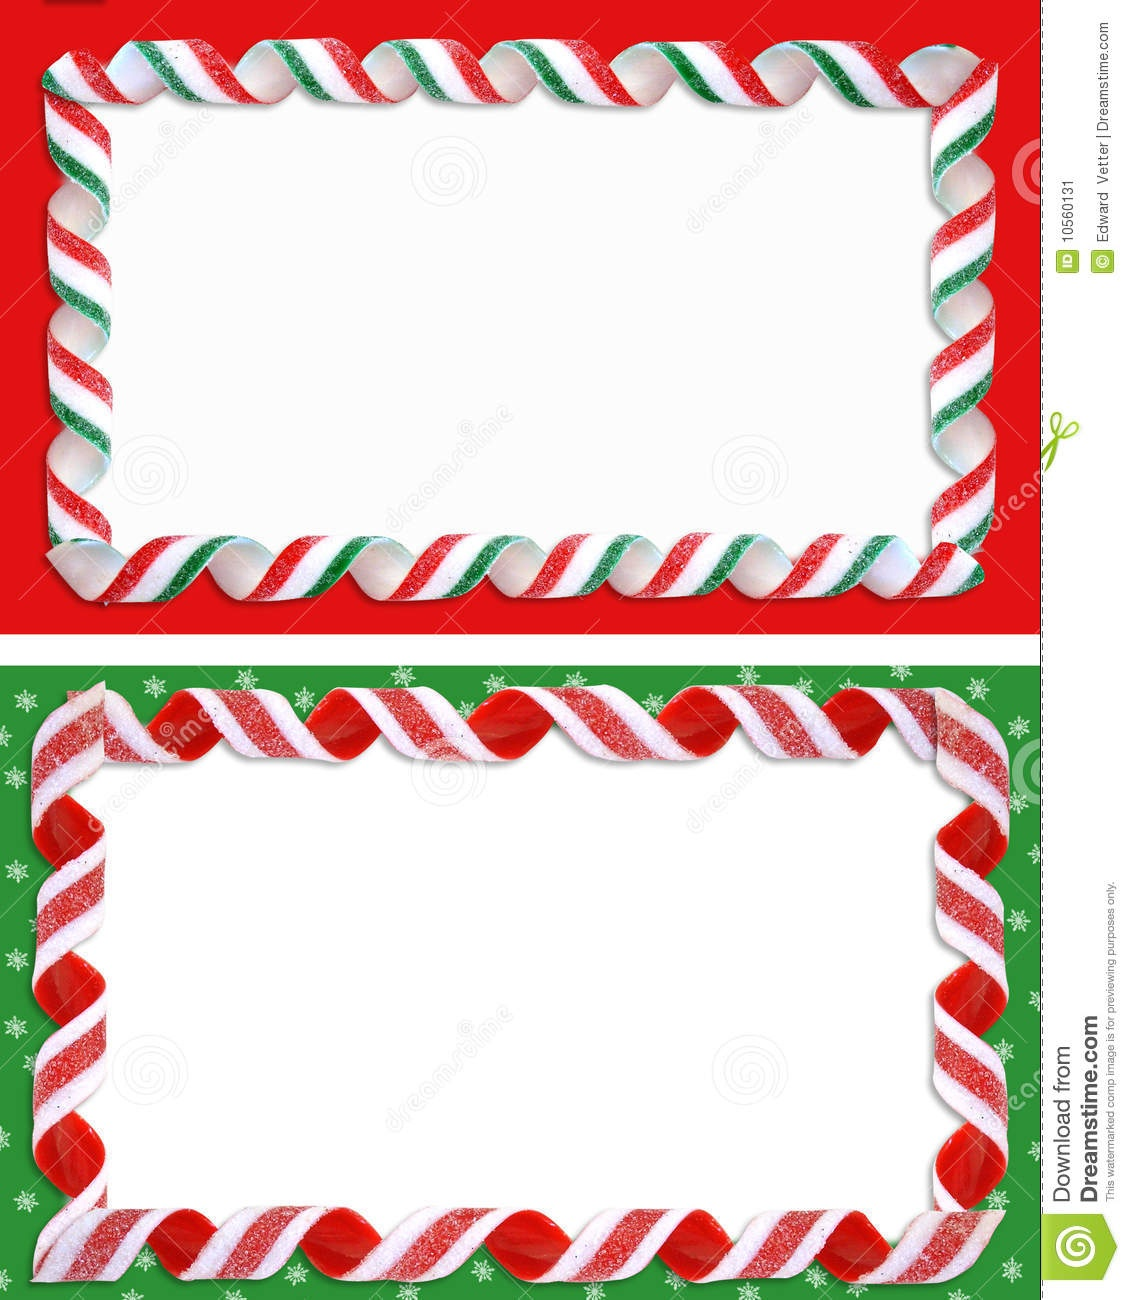 Christmas Borders Free   Free Download Best Christmas Borders Free - Free Printable Christmas Borders